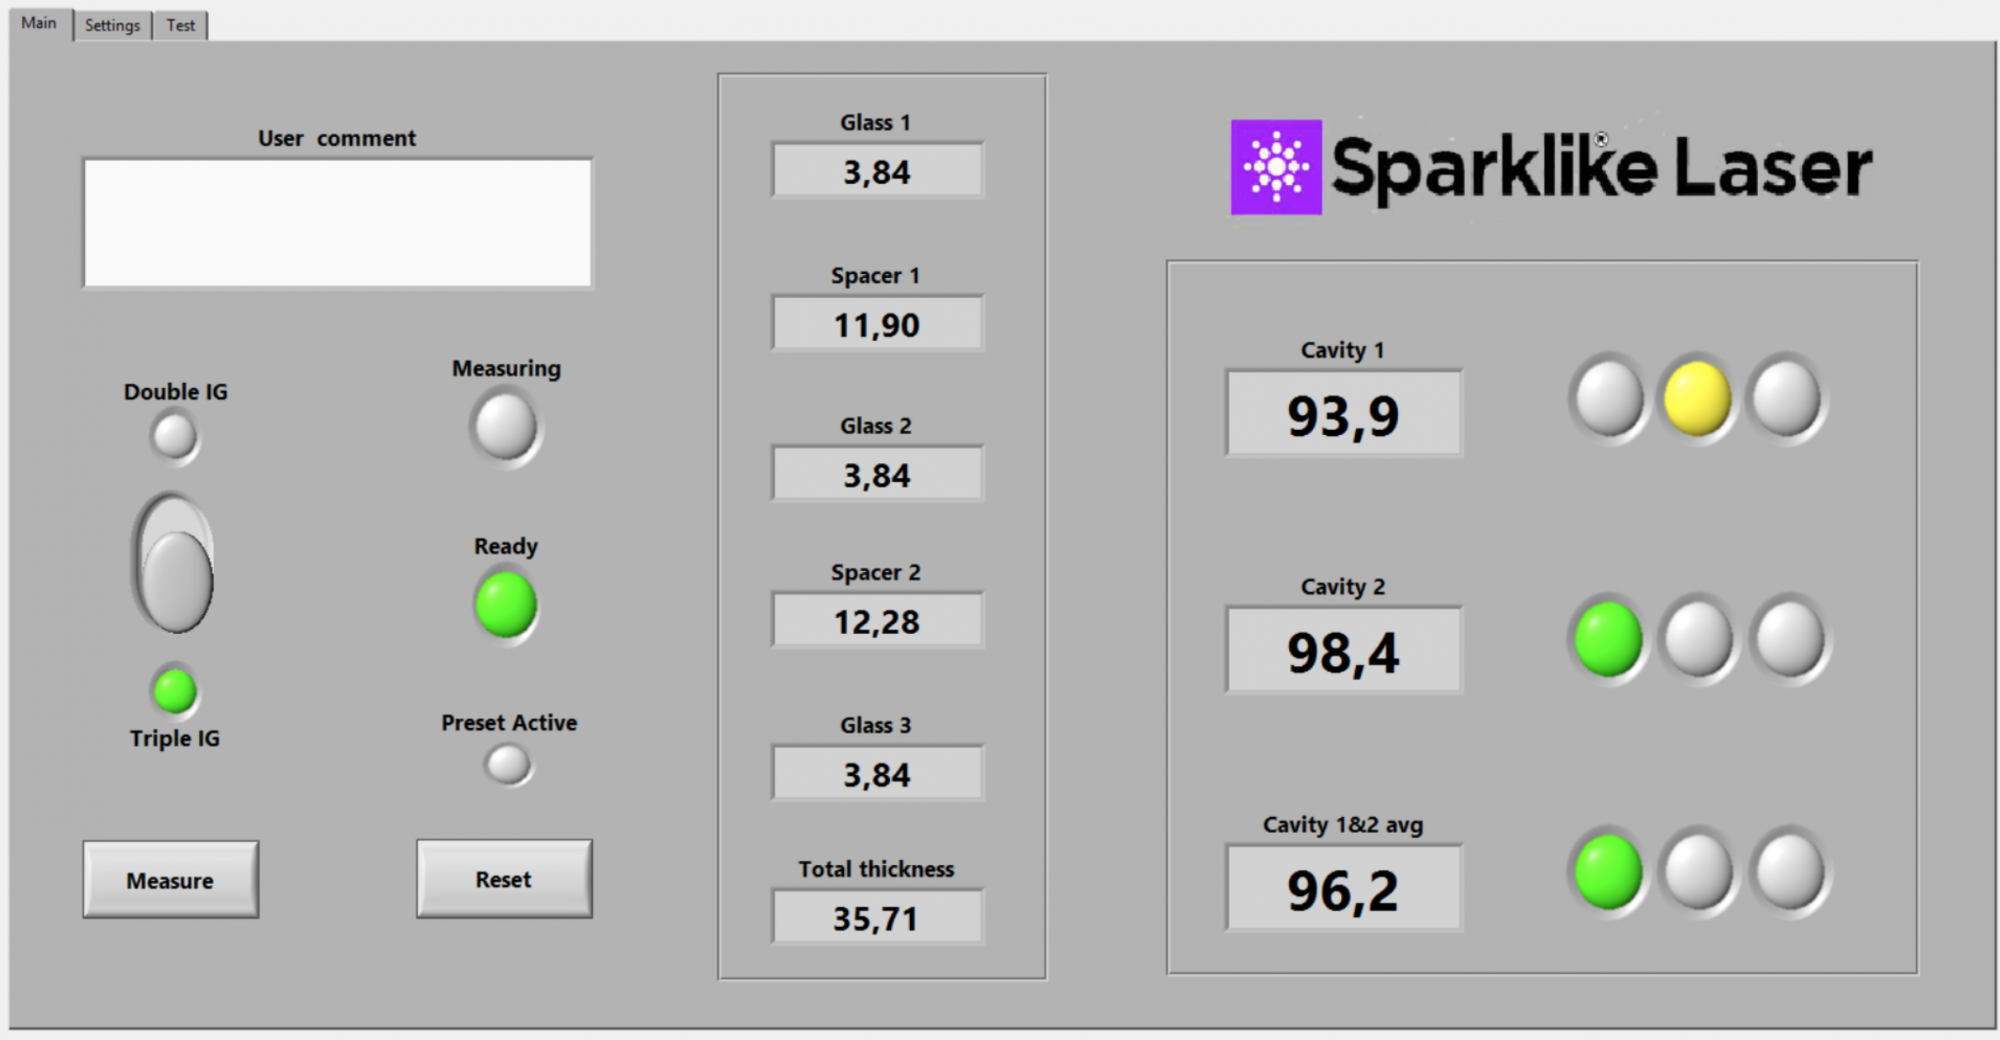 Example results on Laser software by Sparklike